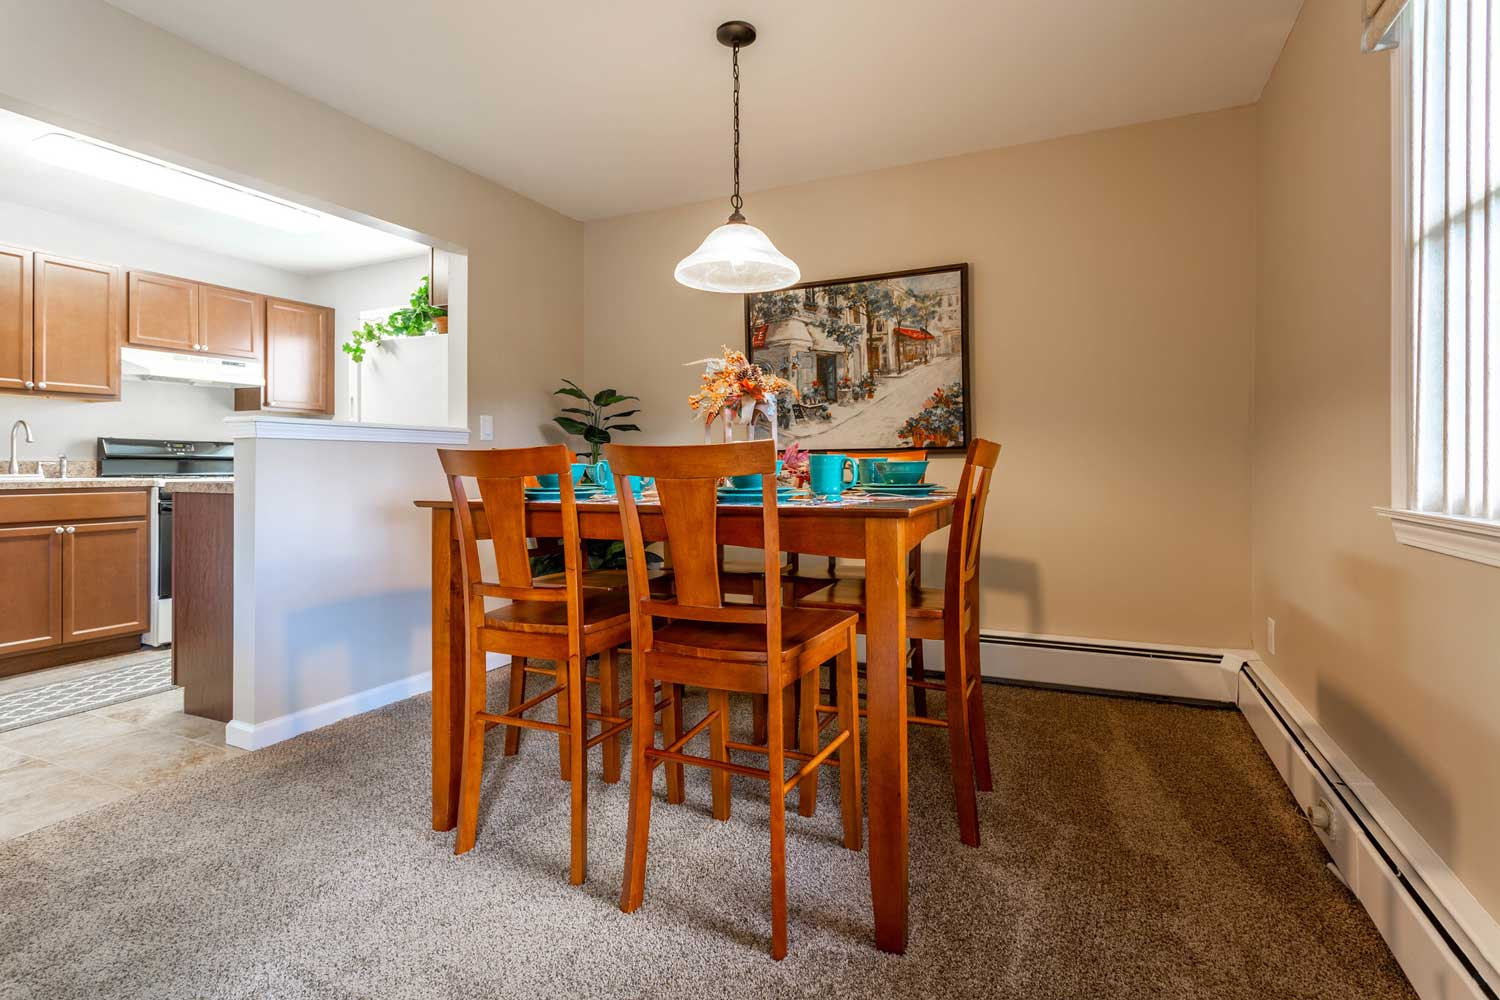 Dining Area at Mountainview Gardens Apartments in Fishkill, NY